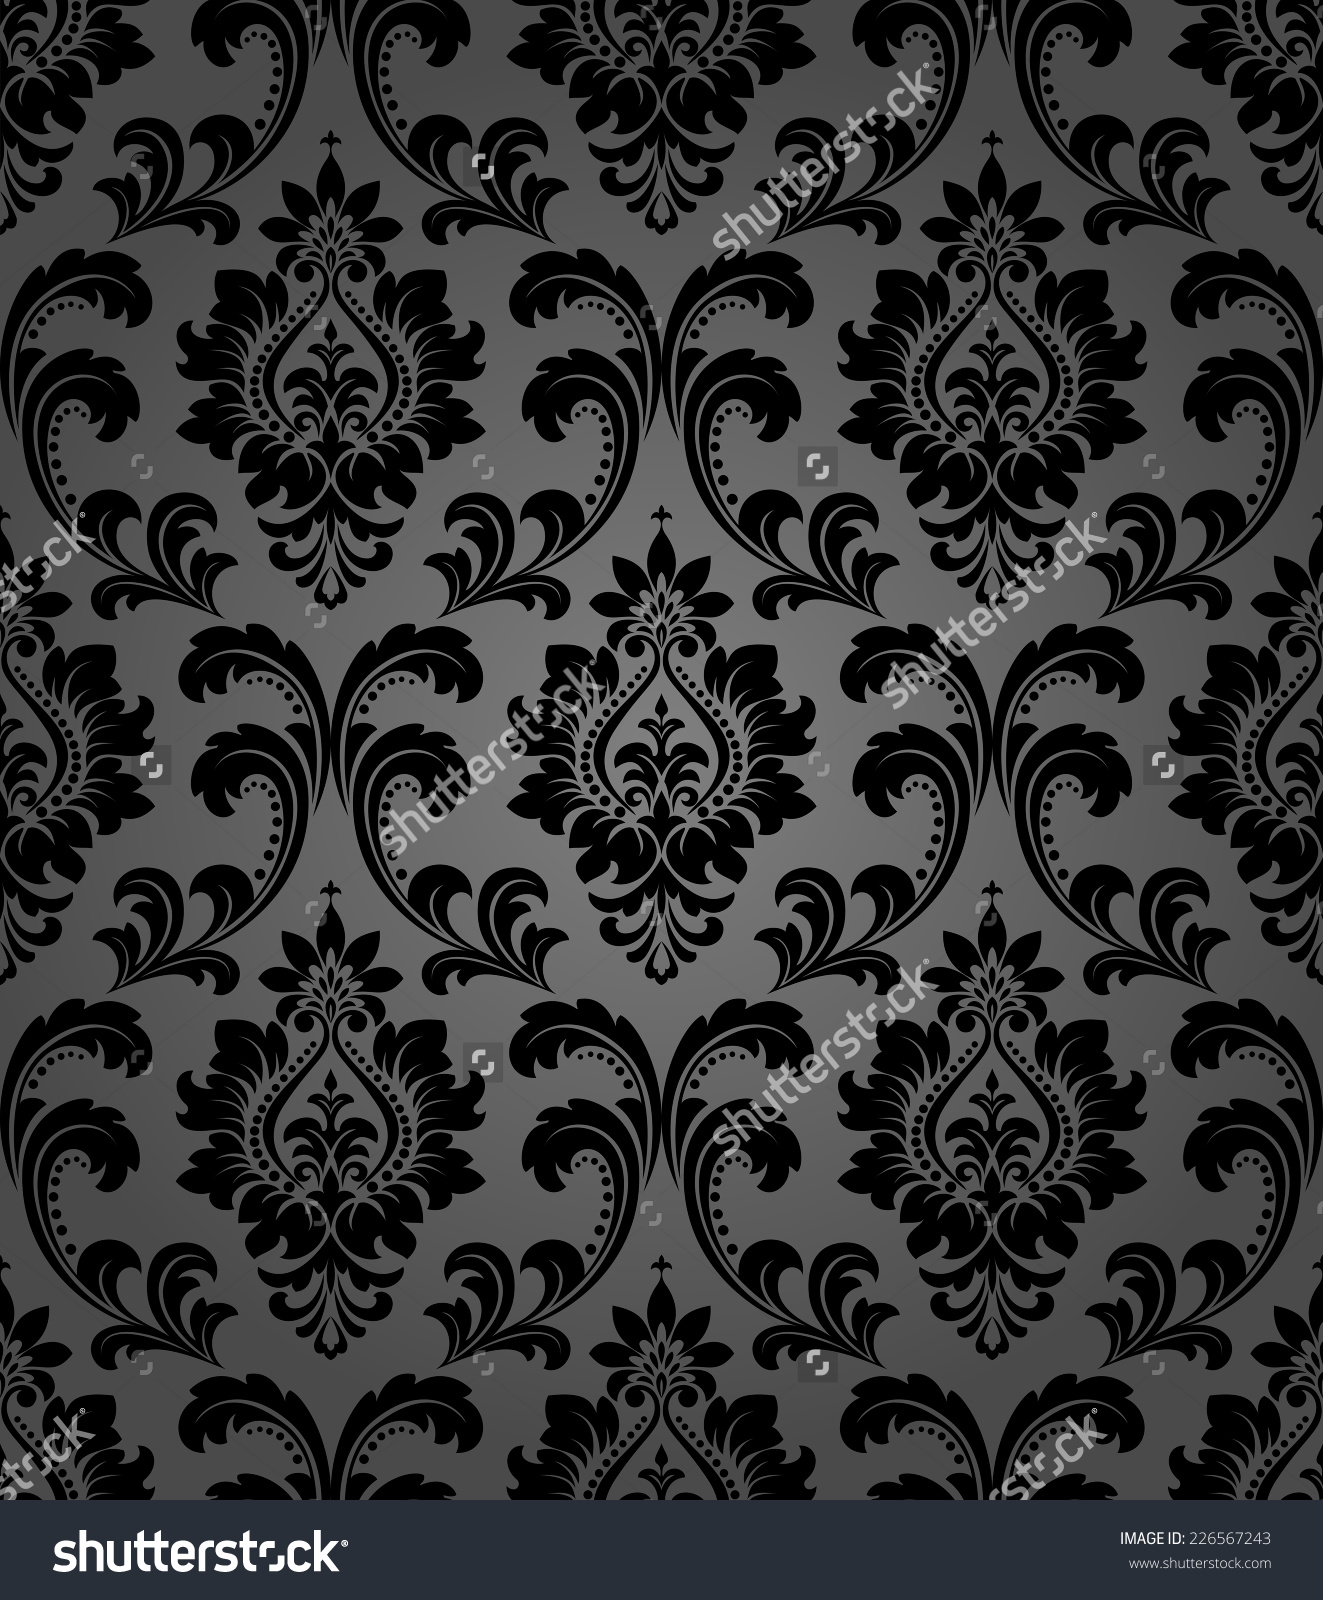 Royal Black Wallpaper